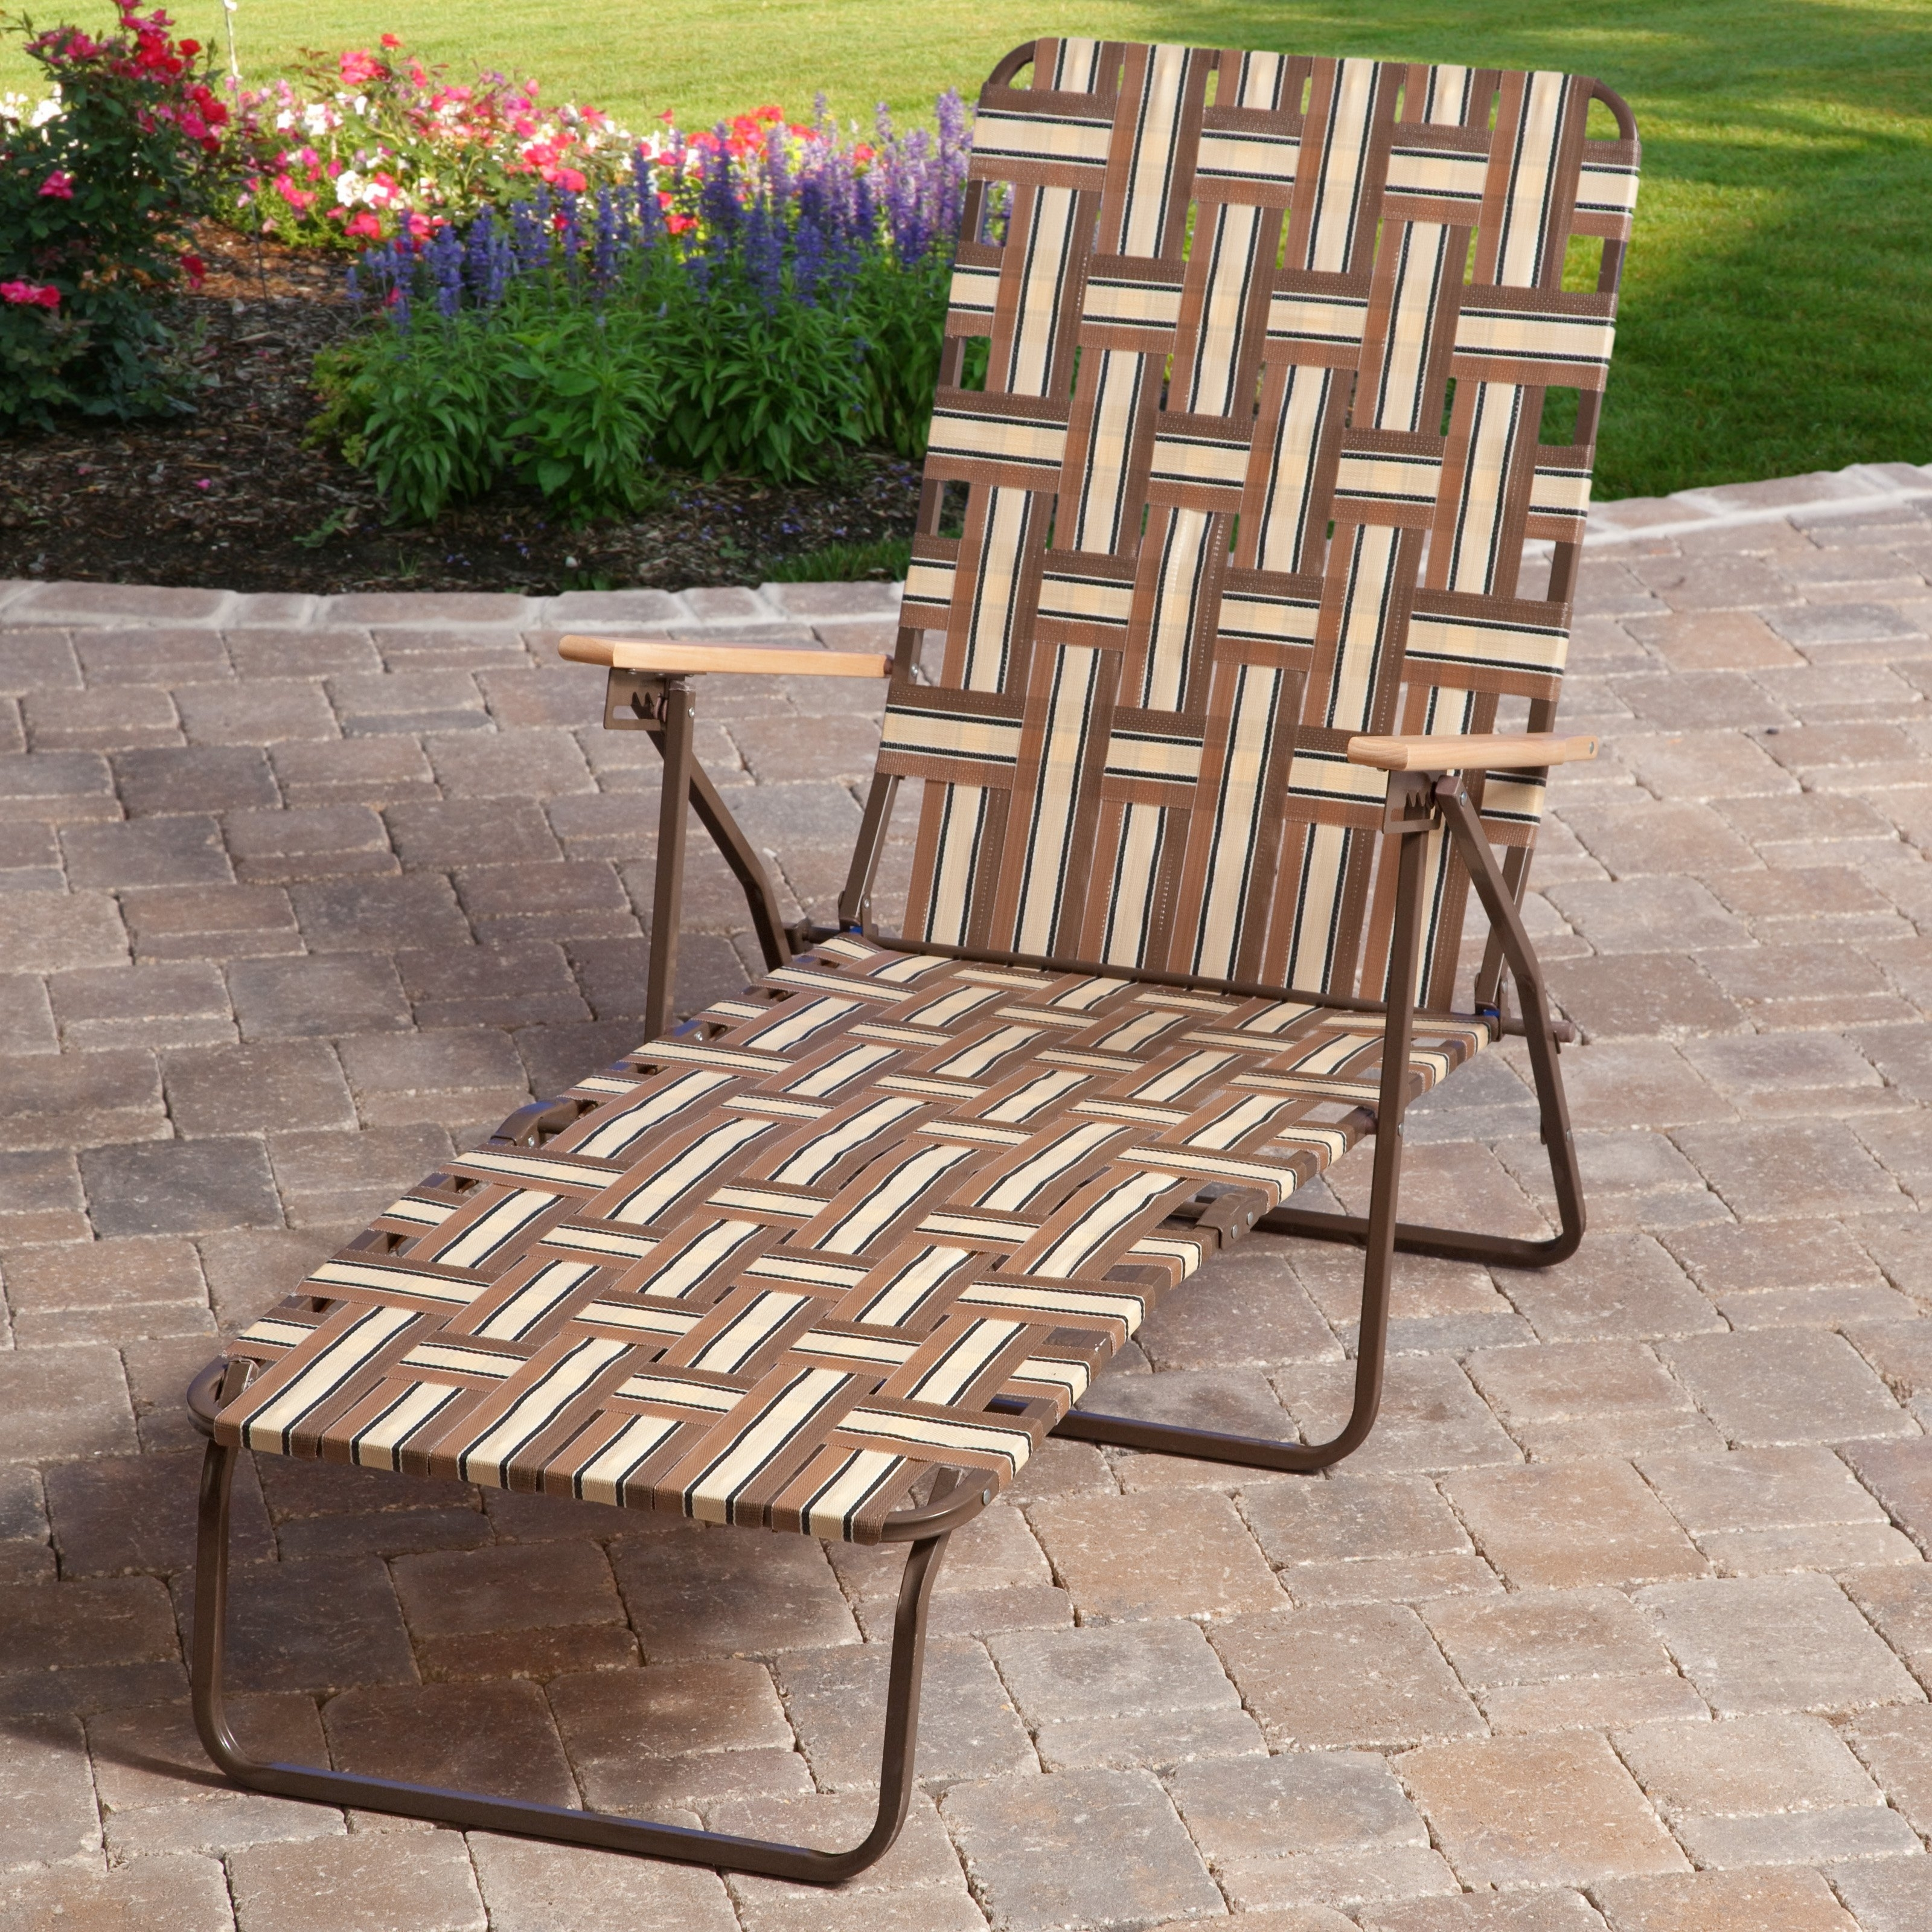 Chaise Lounge Lawn Chairs With Regard To Best And Newest Rio Deluxe Folding Web Chaise Lounge – Walmart (View 7 of 15)